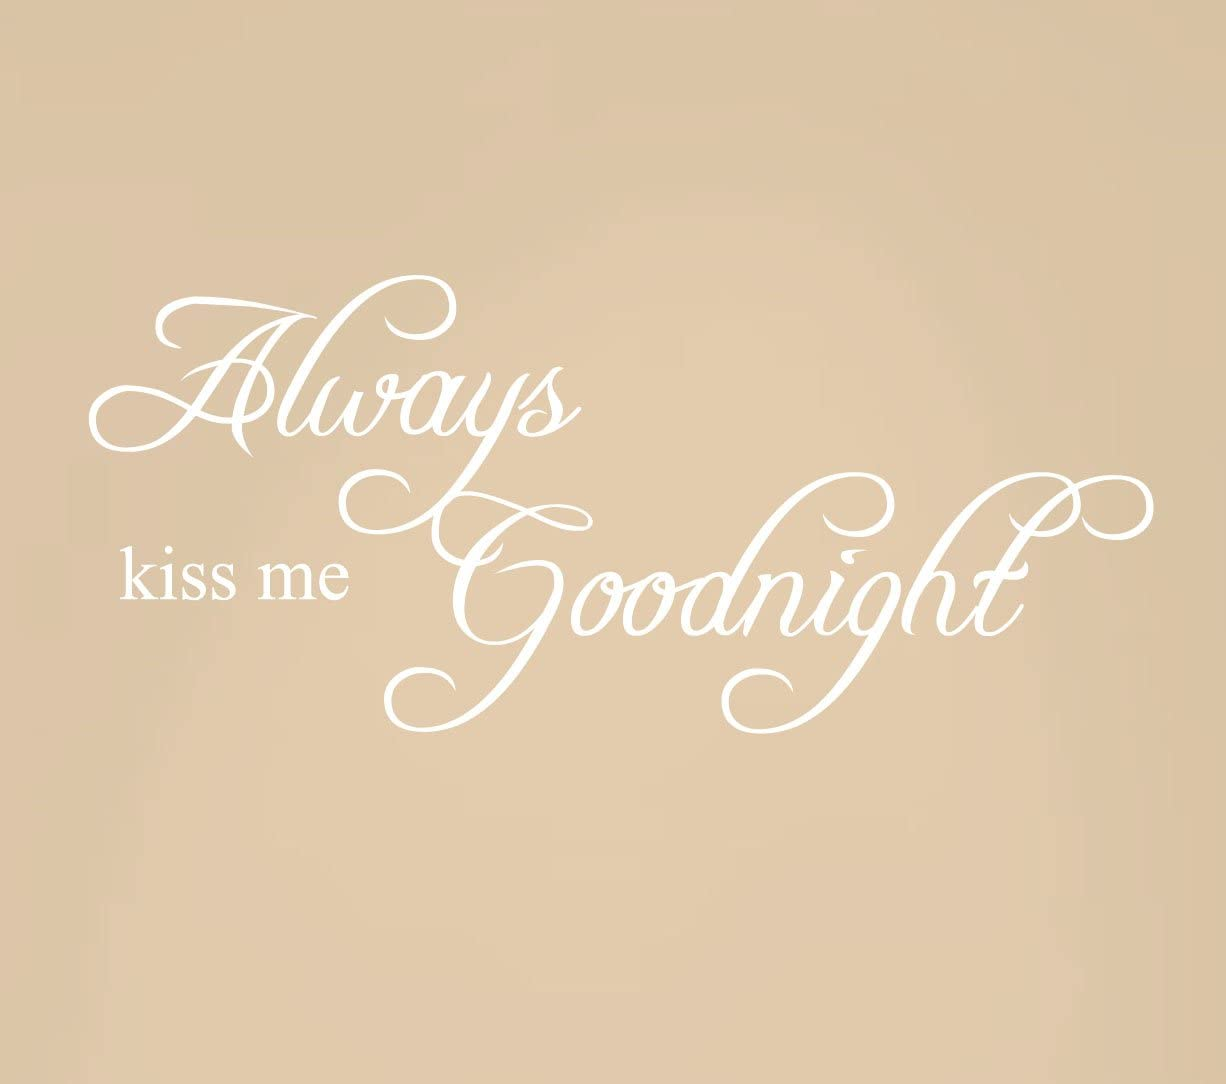 """Always Kiss Me Goodnight Quote Decal Removable Art Wall Sticker Home Bedroom Nursery Décor #1284 (30"""" Wide x 13"""" high, Matte White)"""